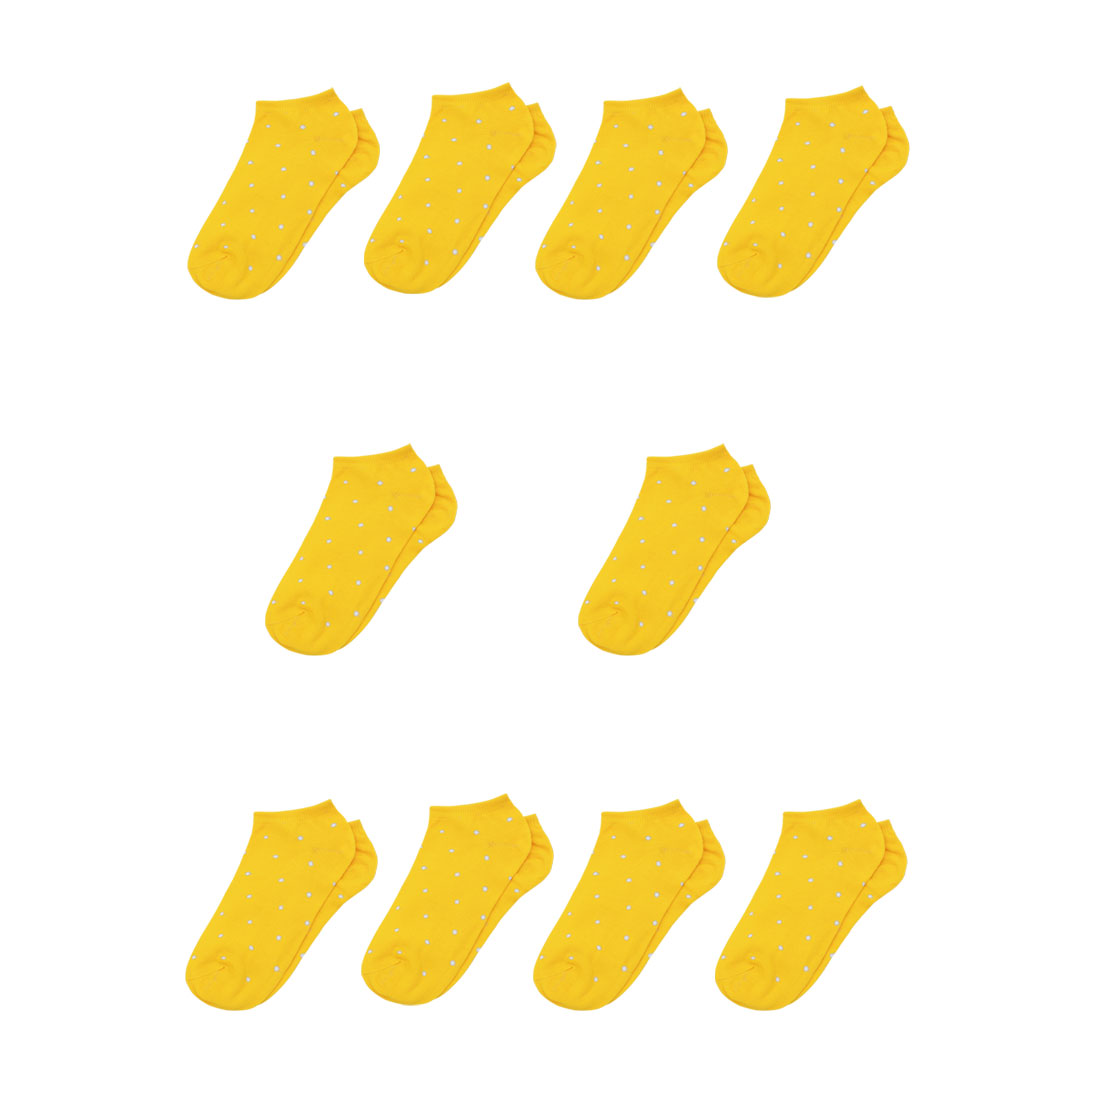 Buy 5 Get 5 Free | Lady Dots Pattern Stretchy Ankle Length Short Socks Yellow